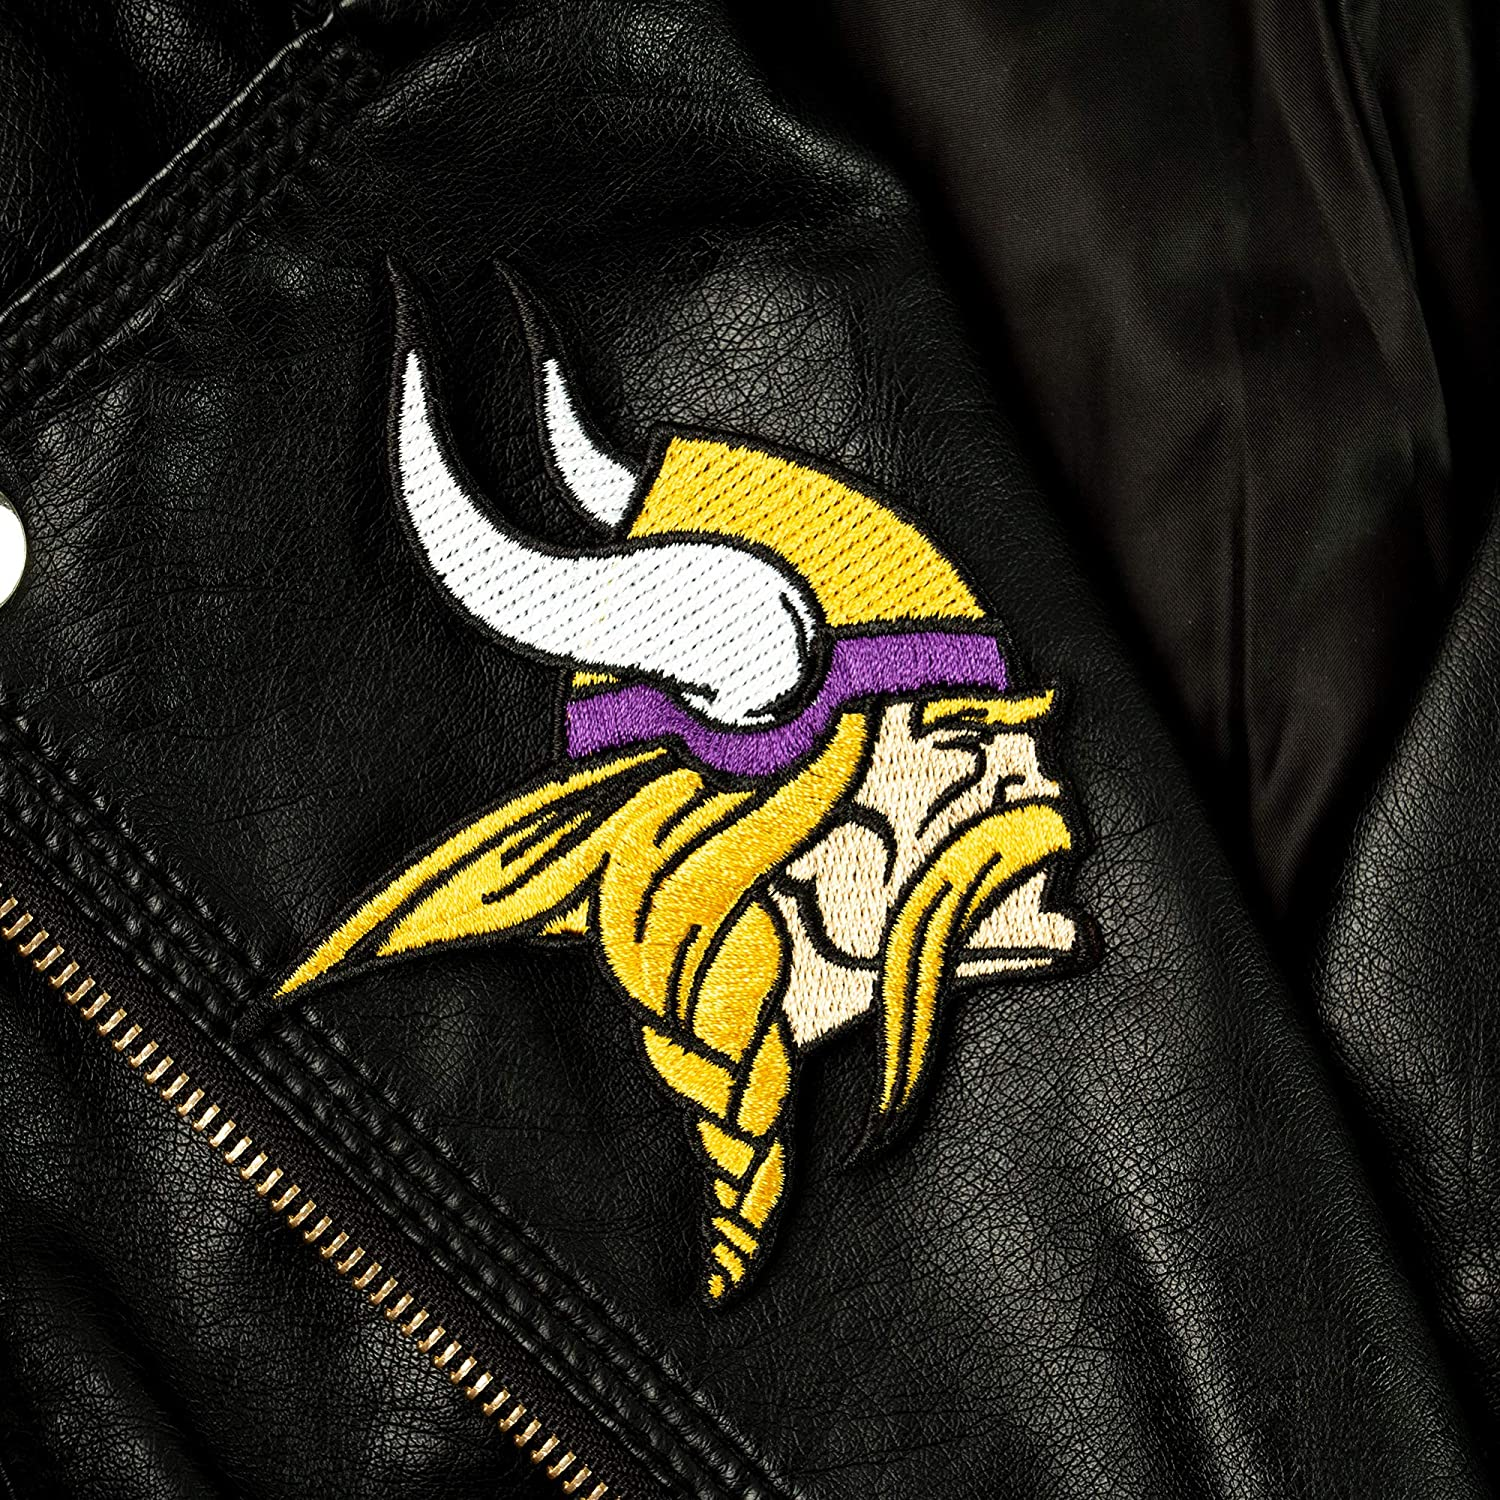 VIKINGS iron on embroidered EMBROIDERY patches patch SIZE 2.8 X 2.2 INCHES FOOTBALL MN